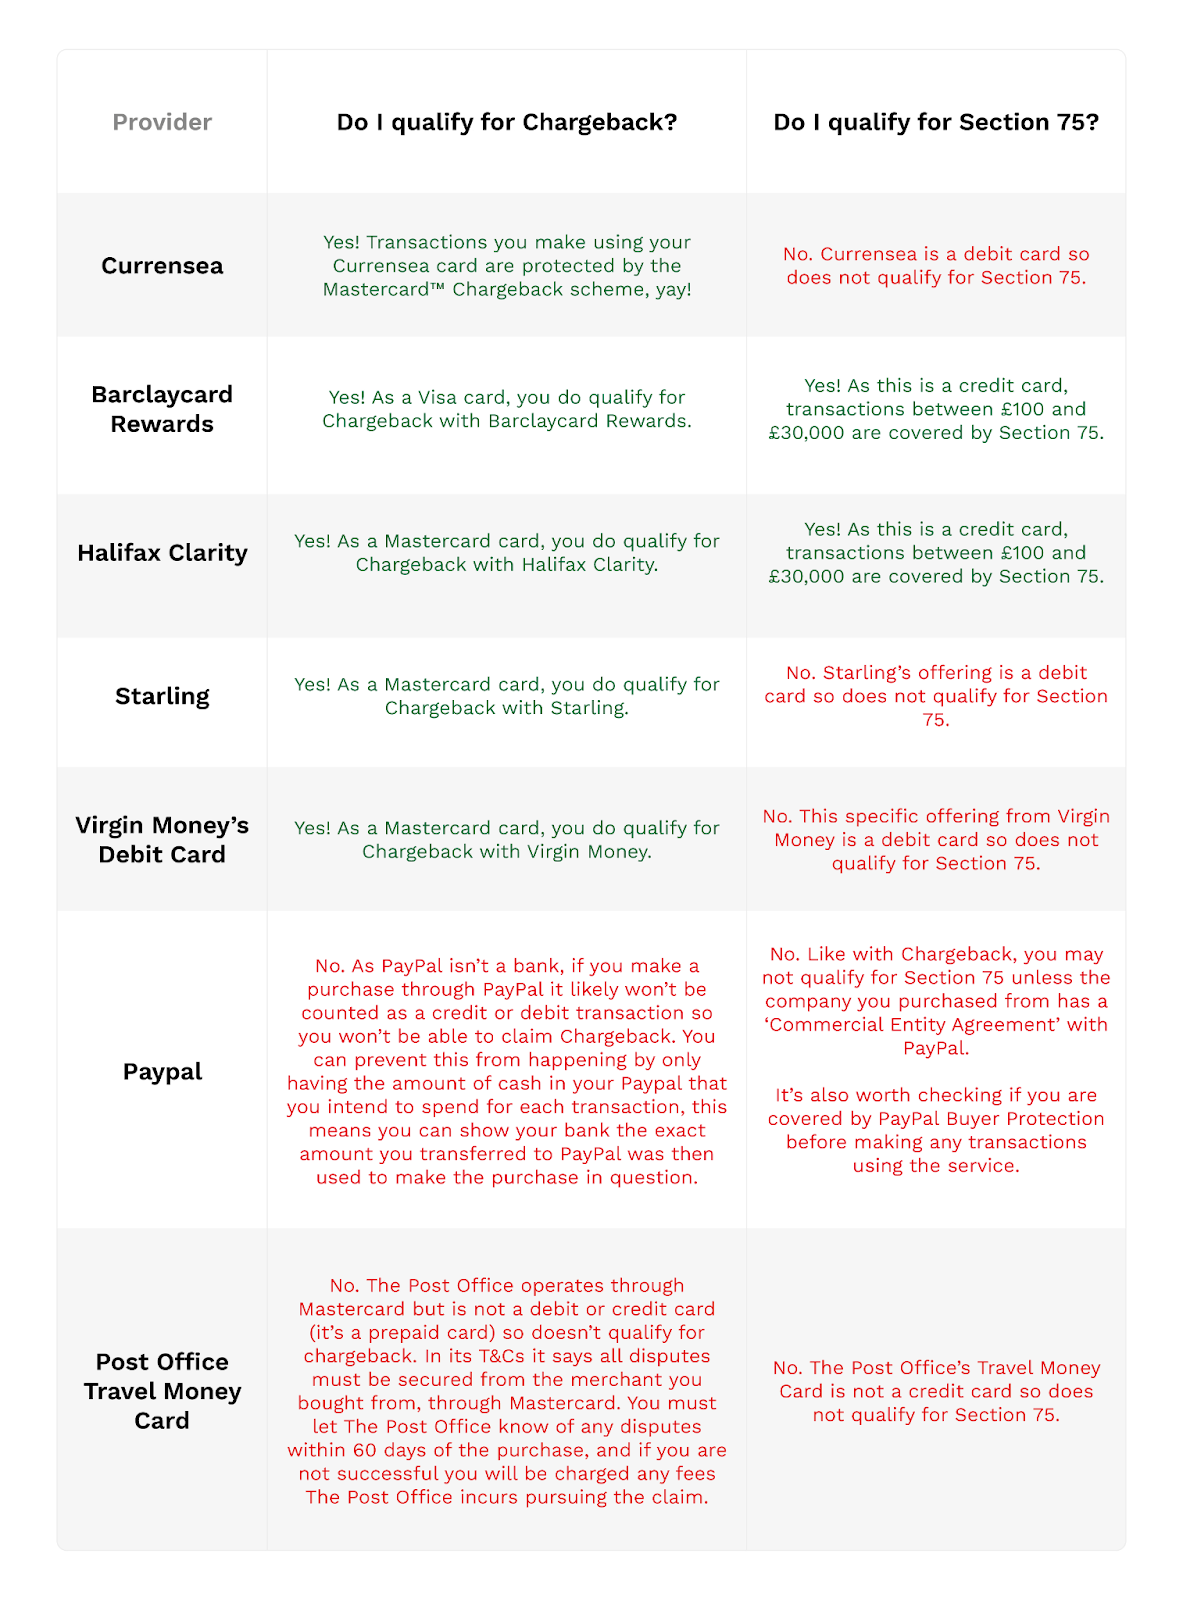 Comparing your protection rights on different spending methods